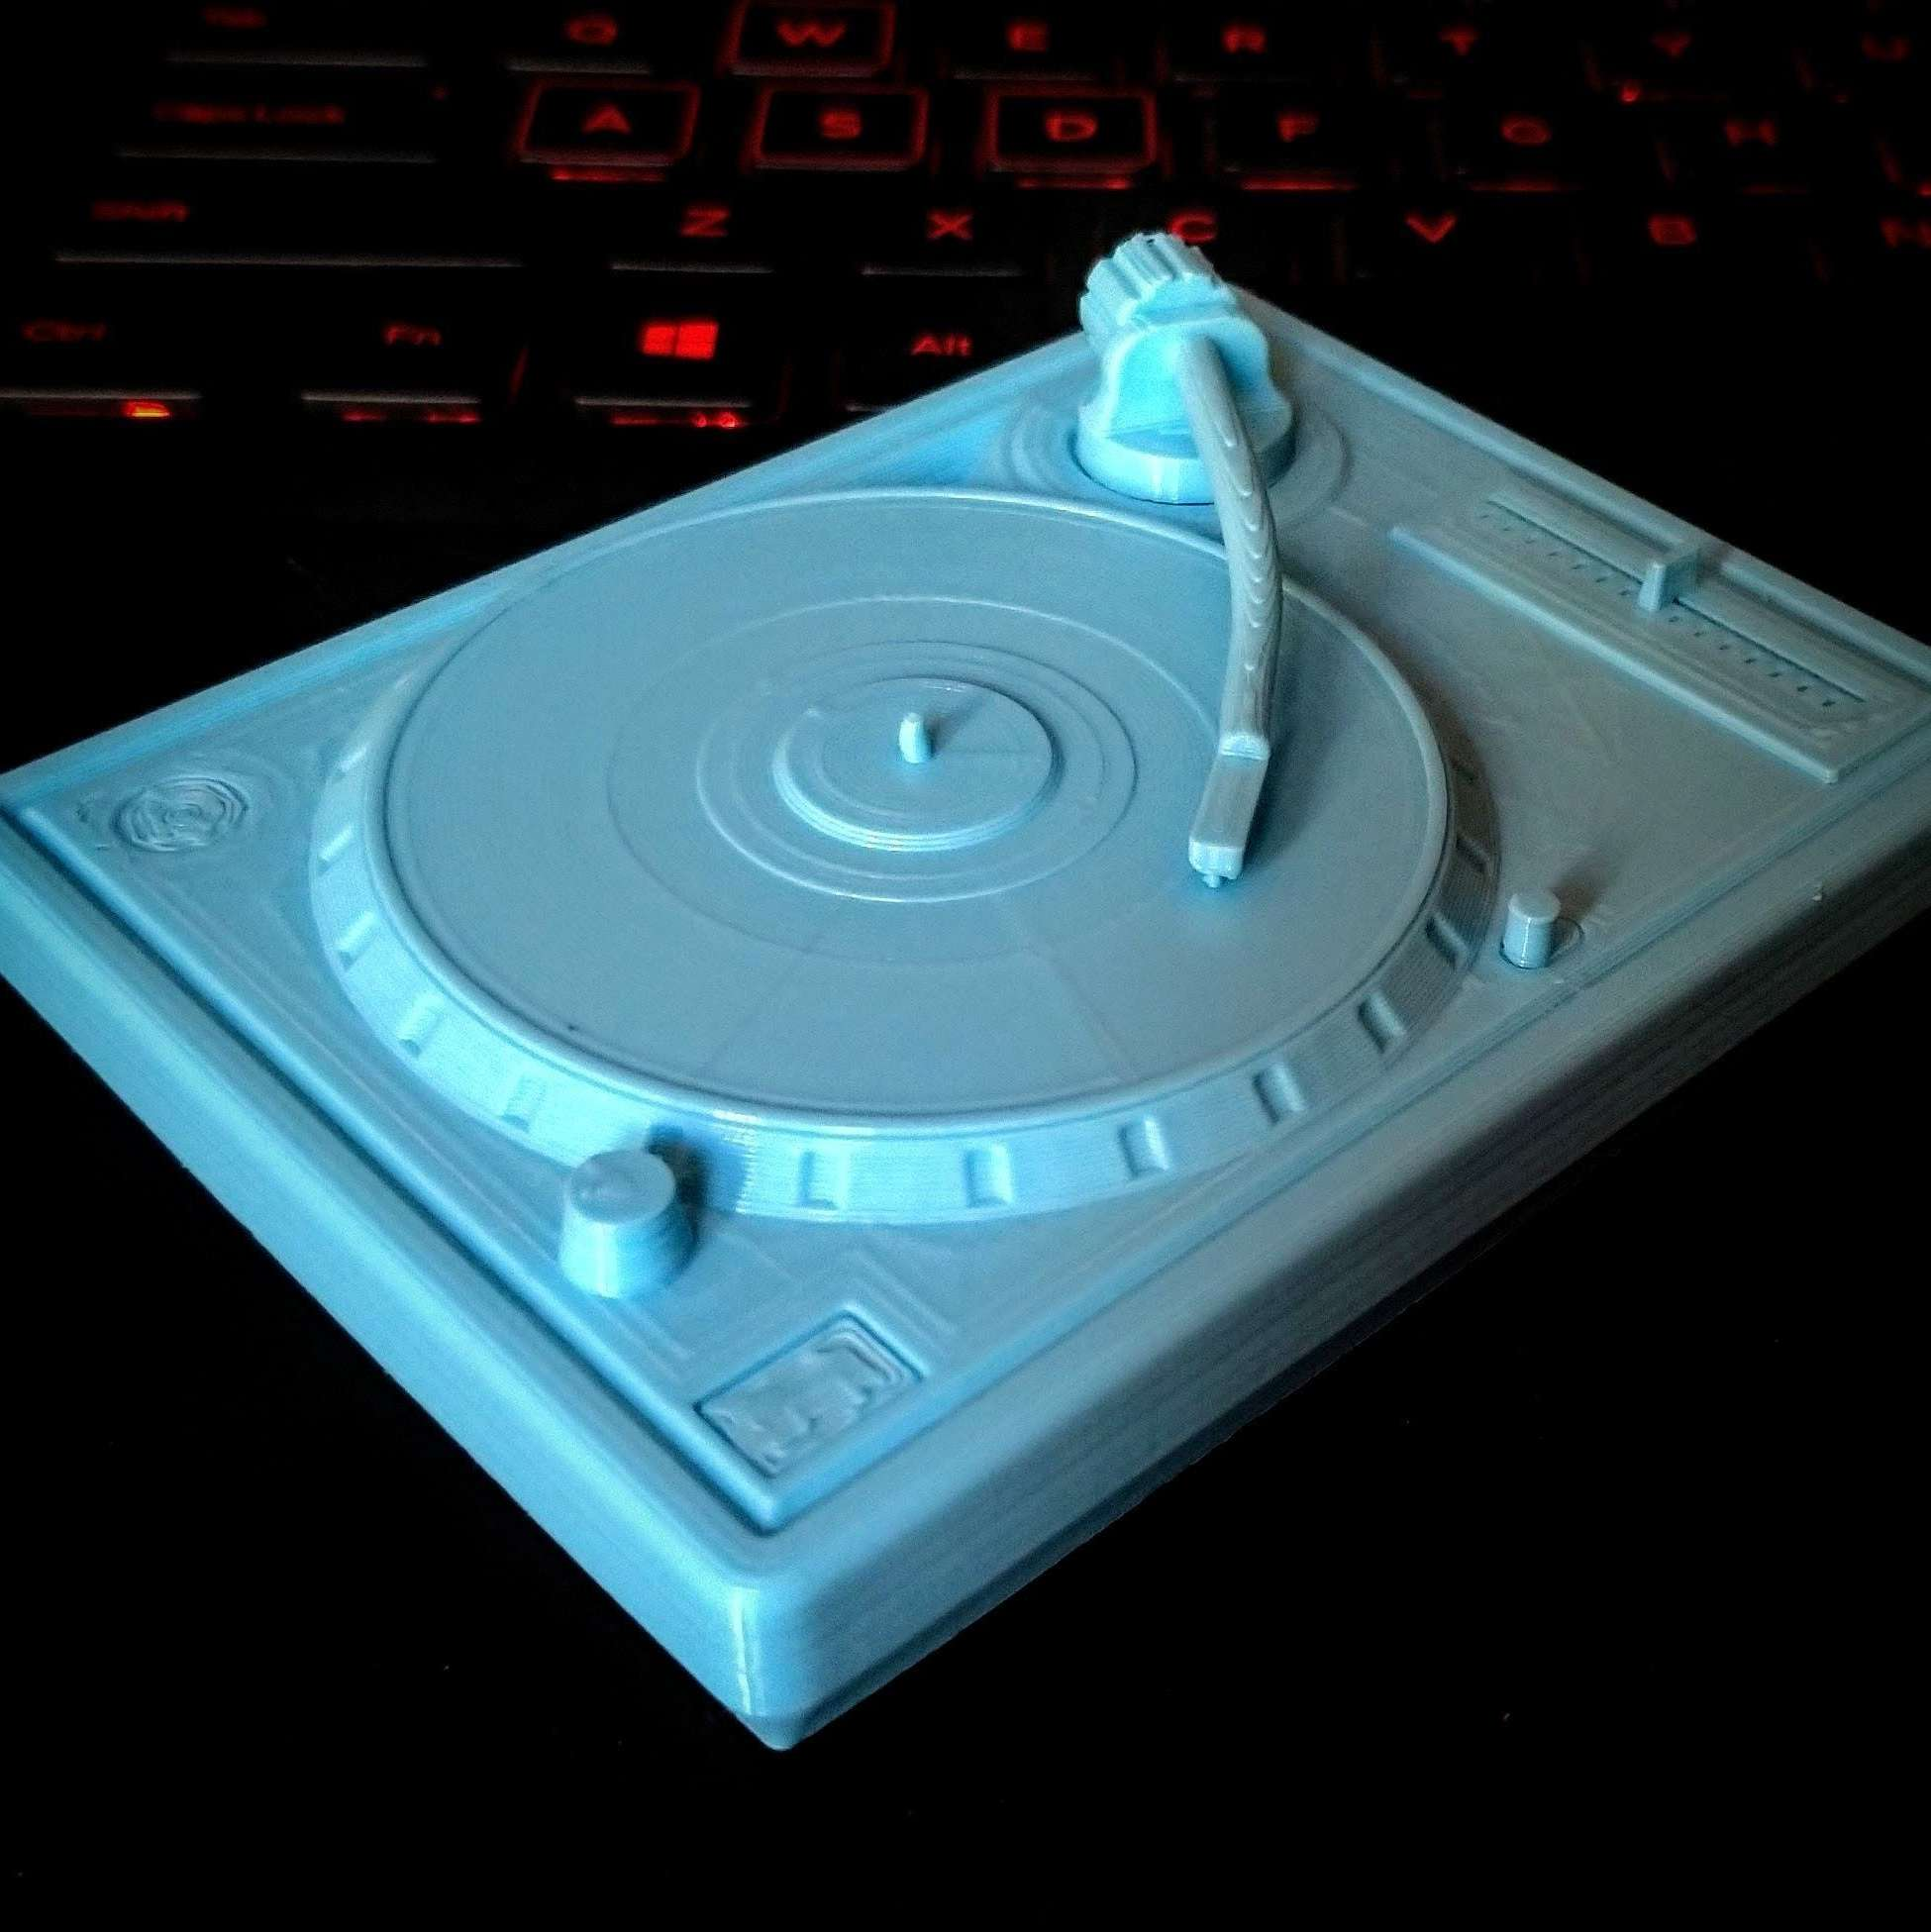 Turntable Vinyl Record Player Low-poly 3D print model - Based on a Audio Technica, model made for 3d print. All modeled as one solid, but also got the file with separated arm. Done with Solidworks 2018 - The best files for 3D printing in the world. Stl models divided into parts to facilitate 3D printing. All kinds of characters, decoration, cosplay, prosthetics, pieces. Quality in 3D printing. Affordable 3D models. Low cost. Collective purchases of 3D files.